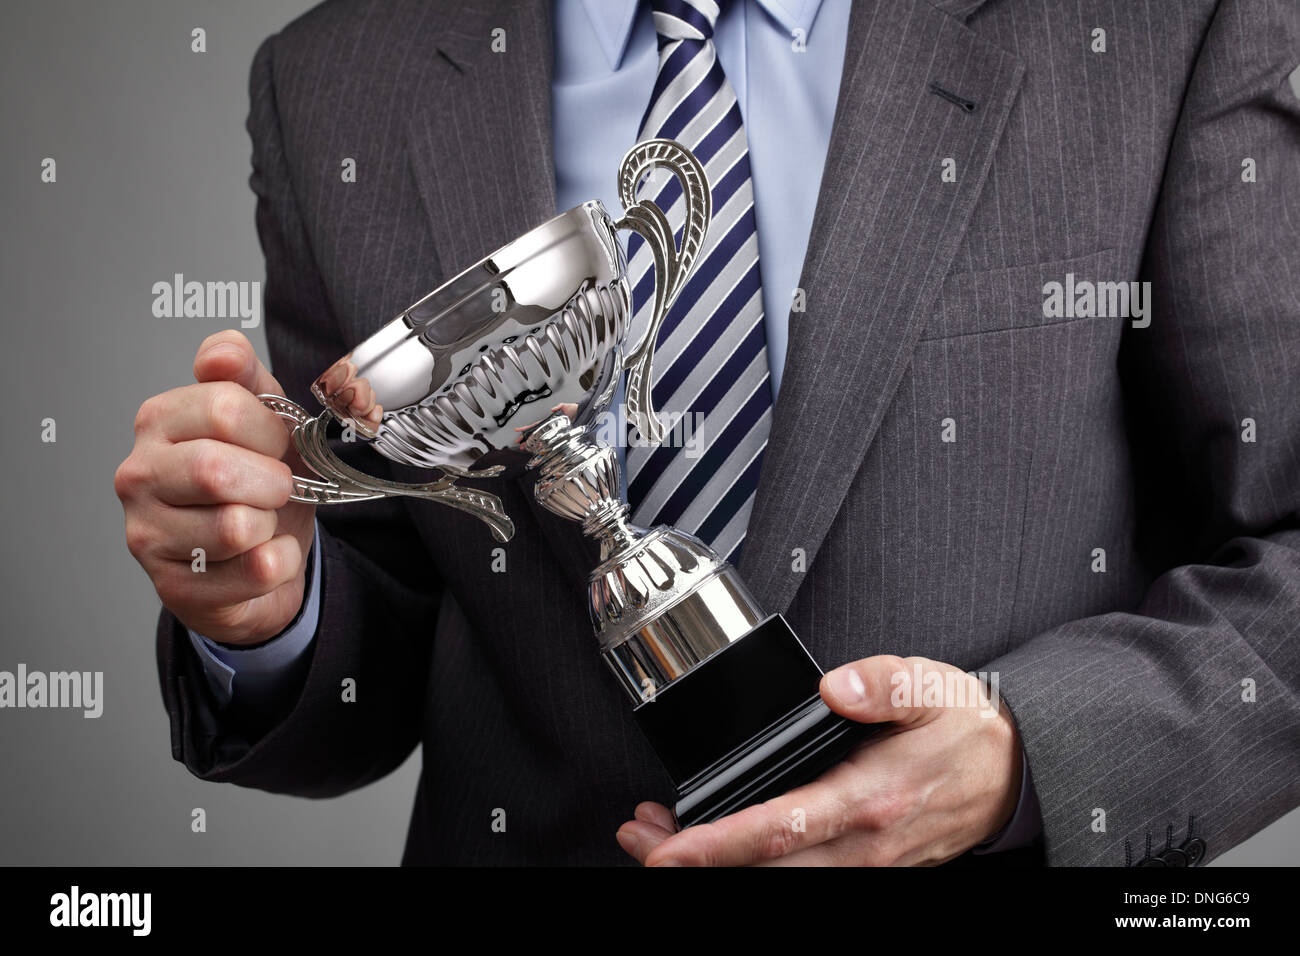 Winning business trophy - Stock Image